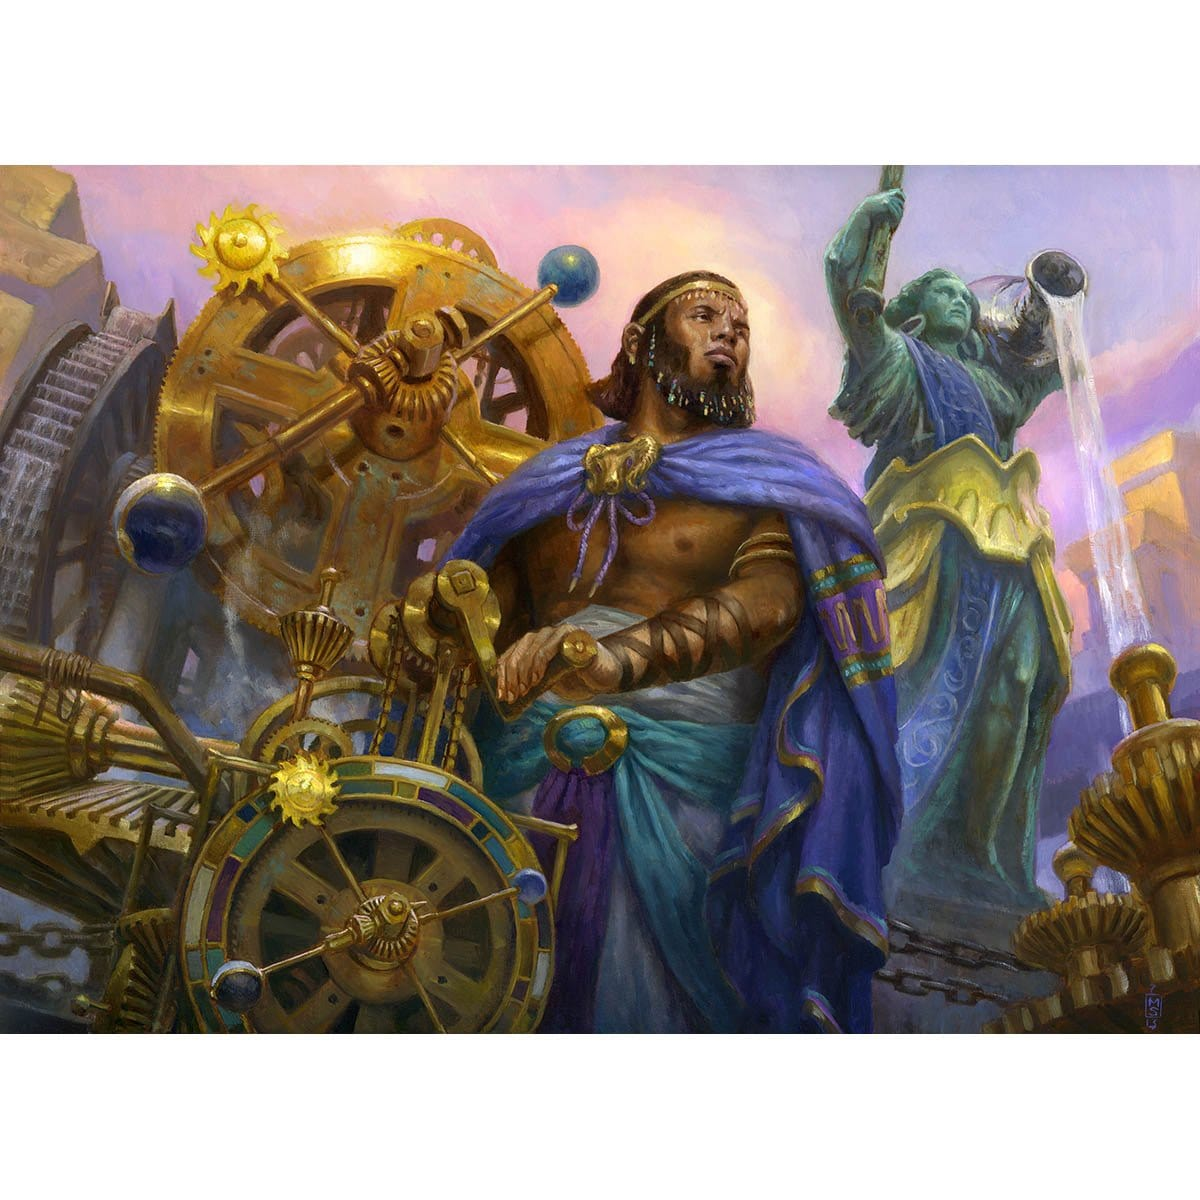 Sage of Hours Print - Print - Original Magic Art - Accessories for Magic the Gathering and other card games